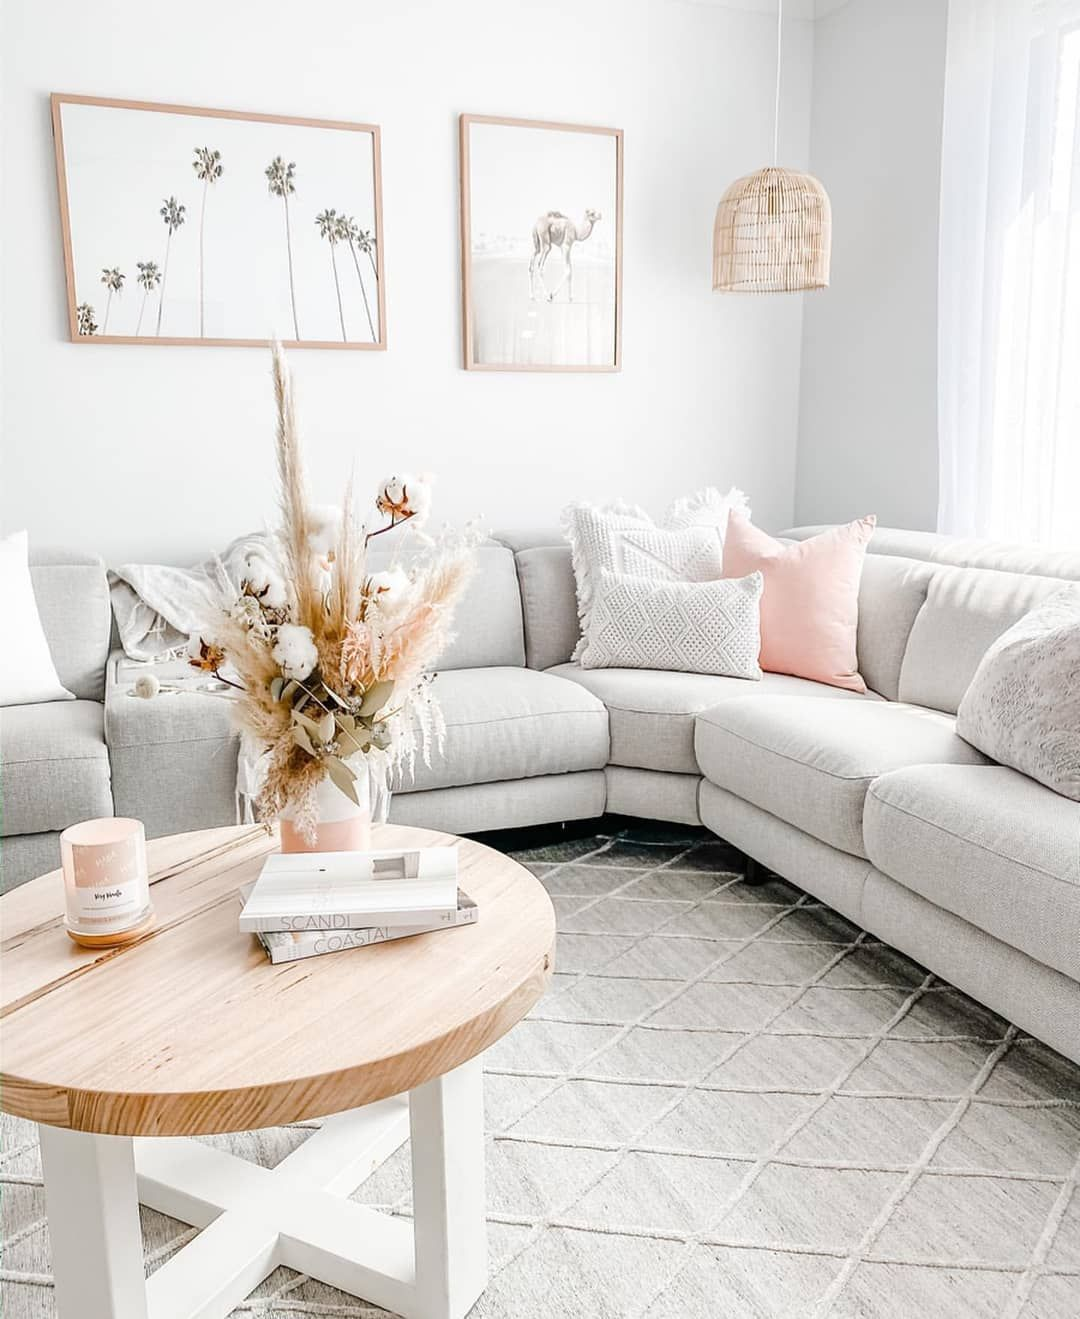 Living Room Inspo The Home Of Ashleejayinteriors Via The Hashtag